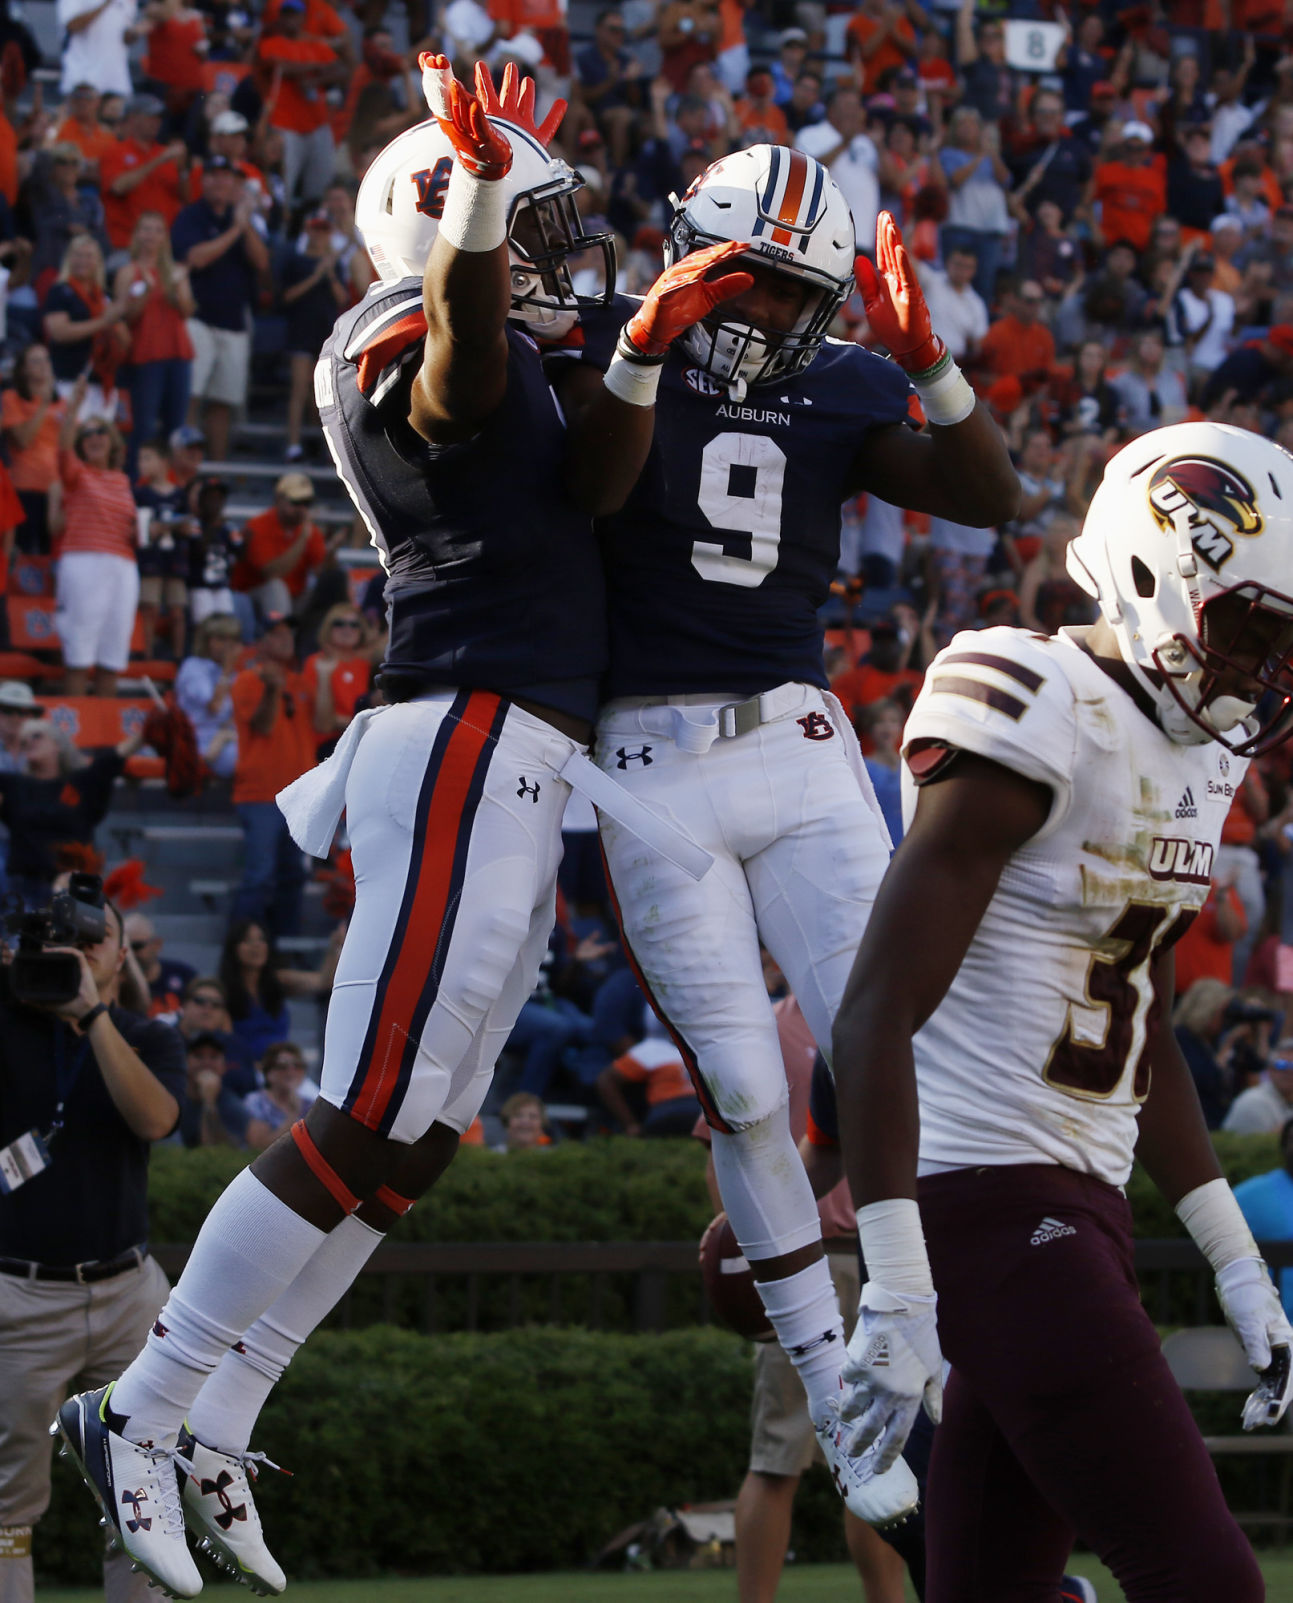 Auburn quarterback Sean White arrested early Sunday